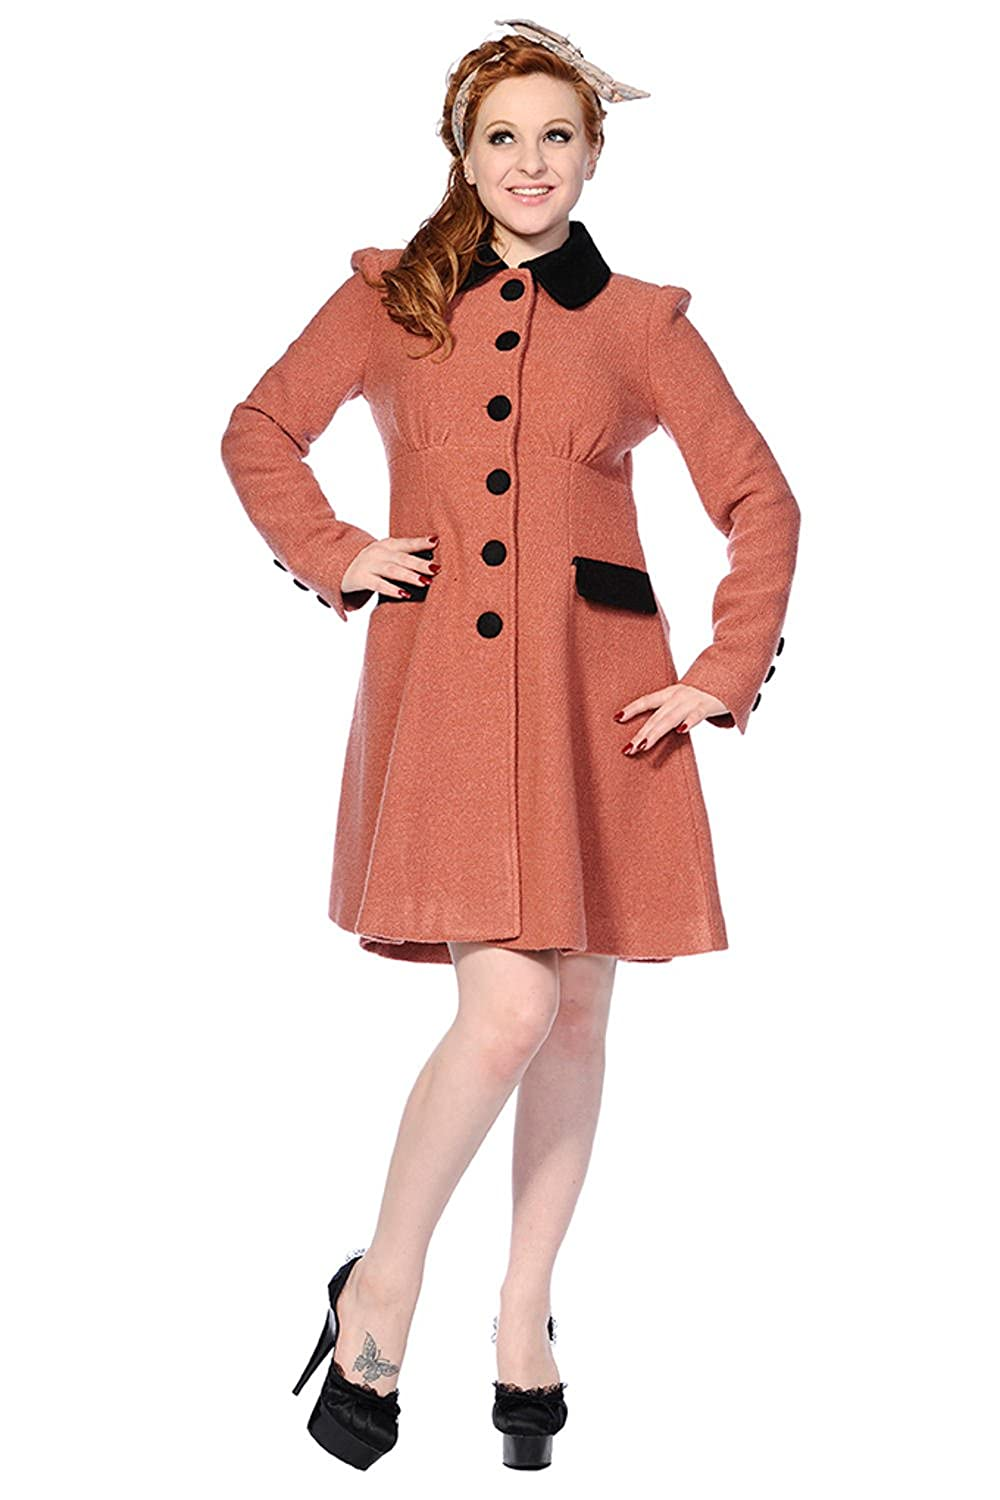 1950s Jackets, Coats, Bolero | Swing, Pin Up, Rockabilly Banned Vintage Coat $113.95 AT vintagedancer.com